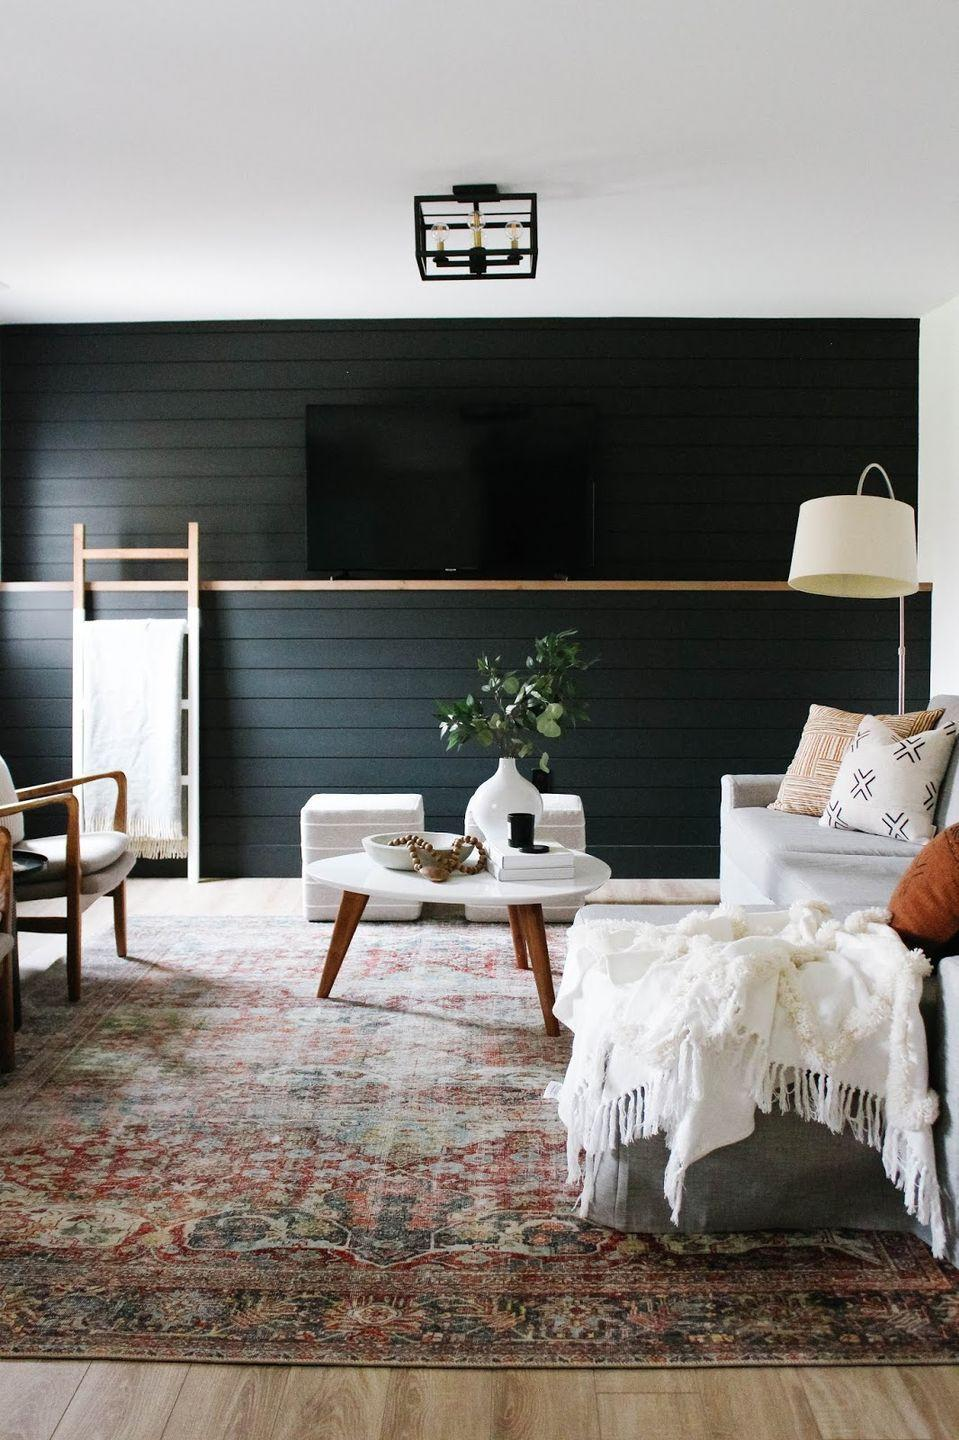 """<p>Step outside your comfort zone by featuring bold black shiplap walls in your basement. This look pairs well with neutrals and is the most genius way to hide your TV in plain sight!</p><p><strong>See more at <a href=""""https://www.houseofhiredesigns.com/2019/10/basement-reveal.html"""" rel=""""nofollow noopener"""" target=""""_blank"""" data-ylk=""""slk:House of Hire"""" class=""""link rapid-noclick-resp"""">House of Hire</a>.</strong></p><p><a class=""""link rapid-noclick-resp"""" href=""""https://go.redirectingat.com?id=74968X1596630&url=https%3A%2F%2Fwww.walmart.com%2Fip%2F15-W-x-48-H-x-3-1-2-D-Vintage-Farmhouse-3-Rung-Ladder-Barnwood-Decor-Collection-Reclaimed-Grey%2F256880278&sref=https%3A%2F%2Fwww.thepioneerwoman.com%2Fhome-lifestyle%2Fdecorating-ideas%2Fg34763691%2Fbasement-ideas%2F"""" rel=""""nofollow noopener"""" target=""""_blank"""" data-ylk=""""slk:SHOP DECORATIVE LADDERS"""">SHOP DECORATIVE LADDERS</a></p>"""